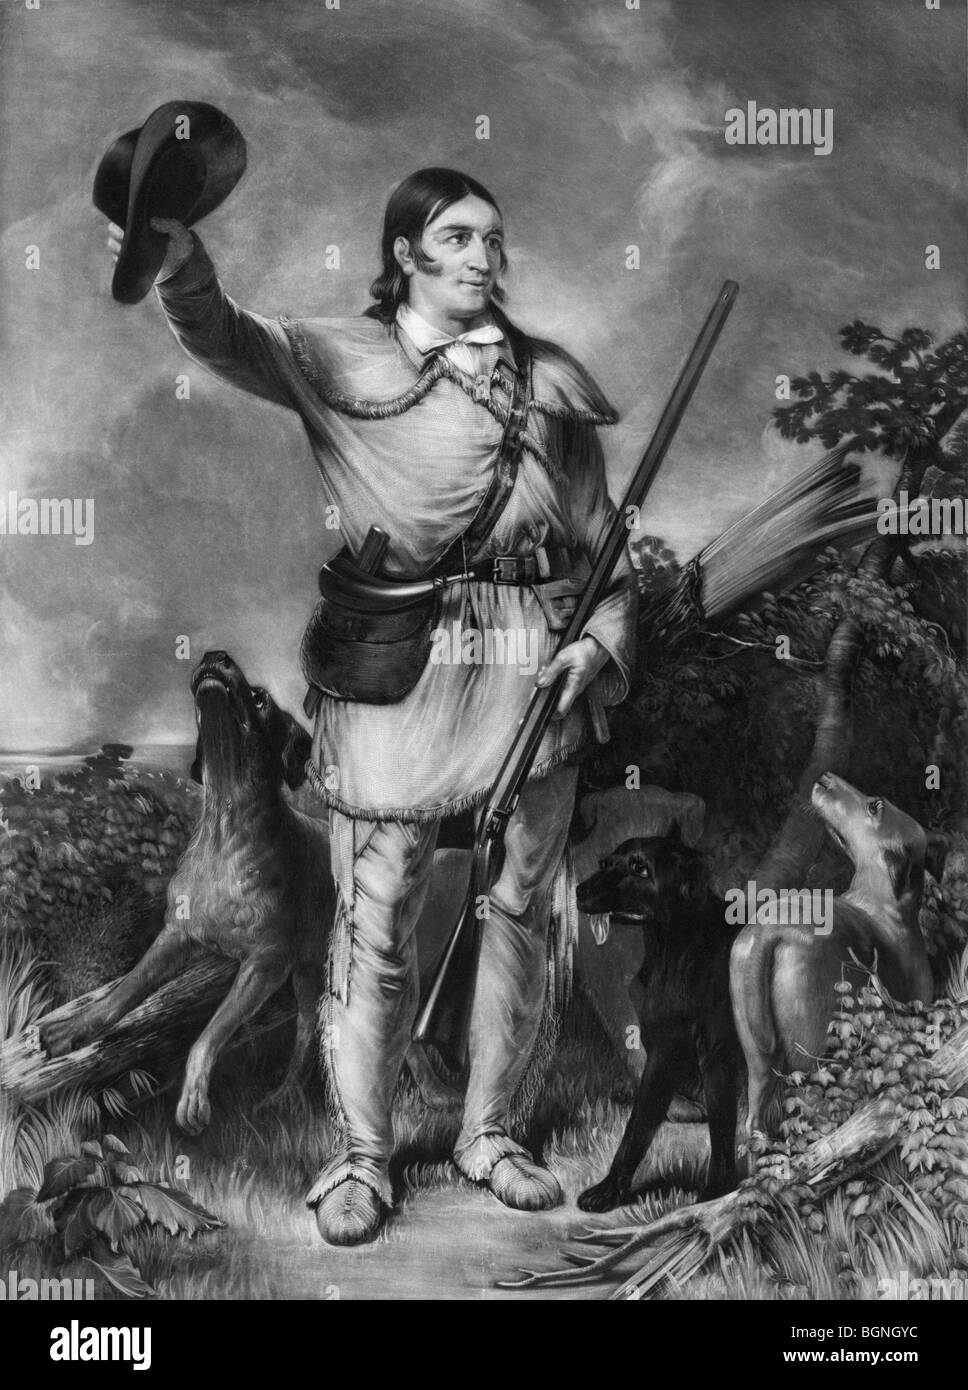 Portrait c1839 of Davy Crockett (1786 - 1836) - the American frontiersman and folk hero killed in the Battle of - Stock Image